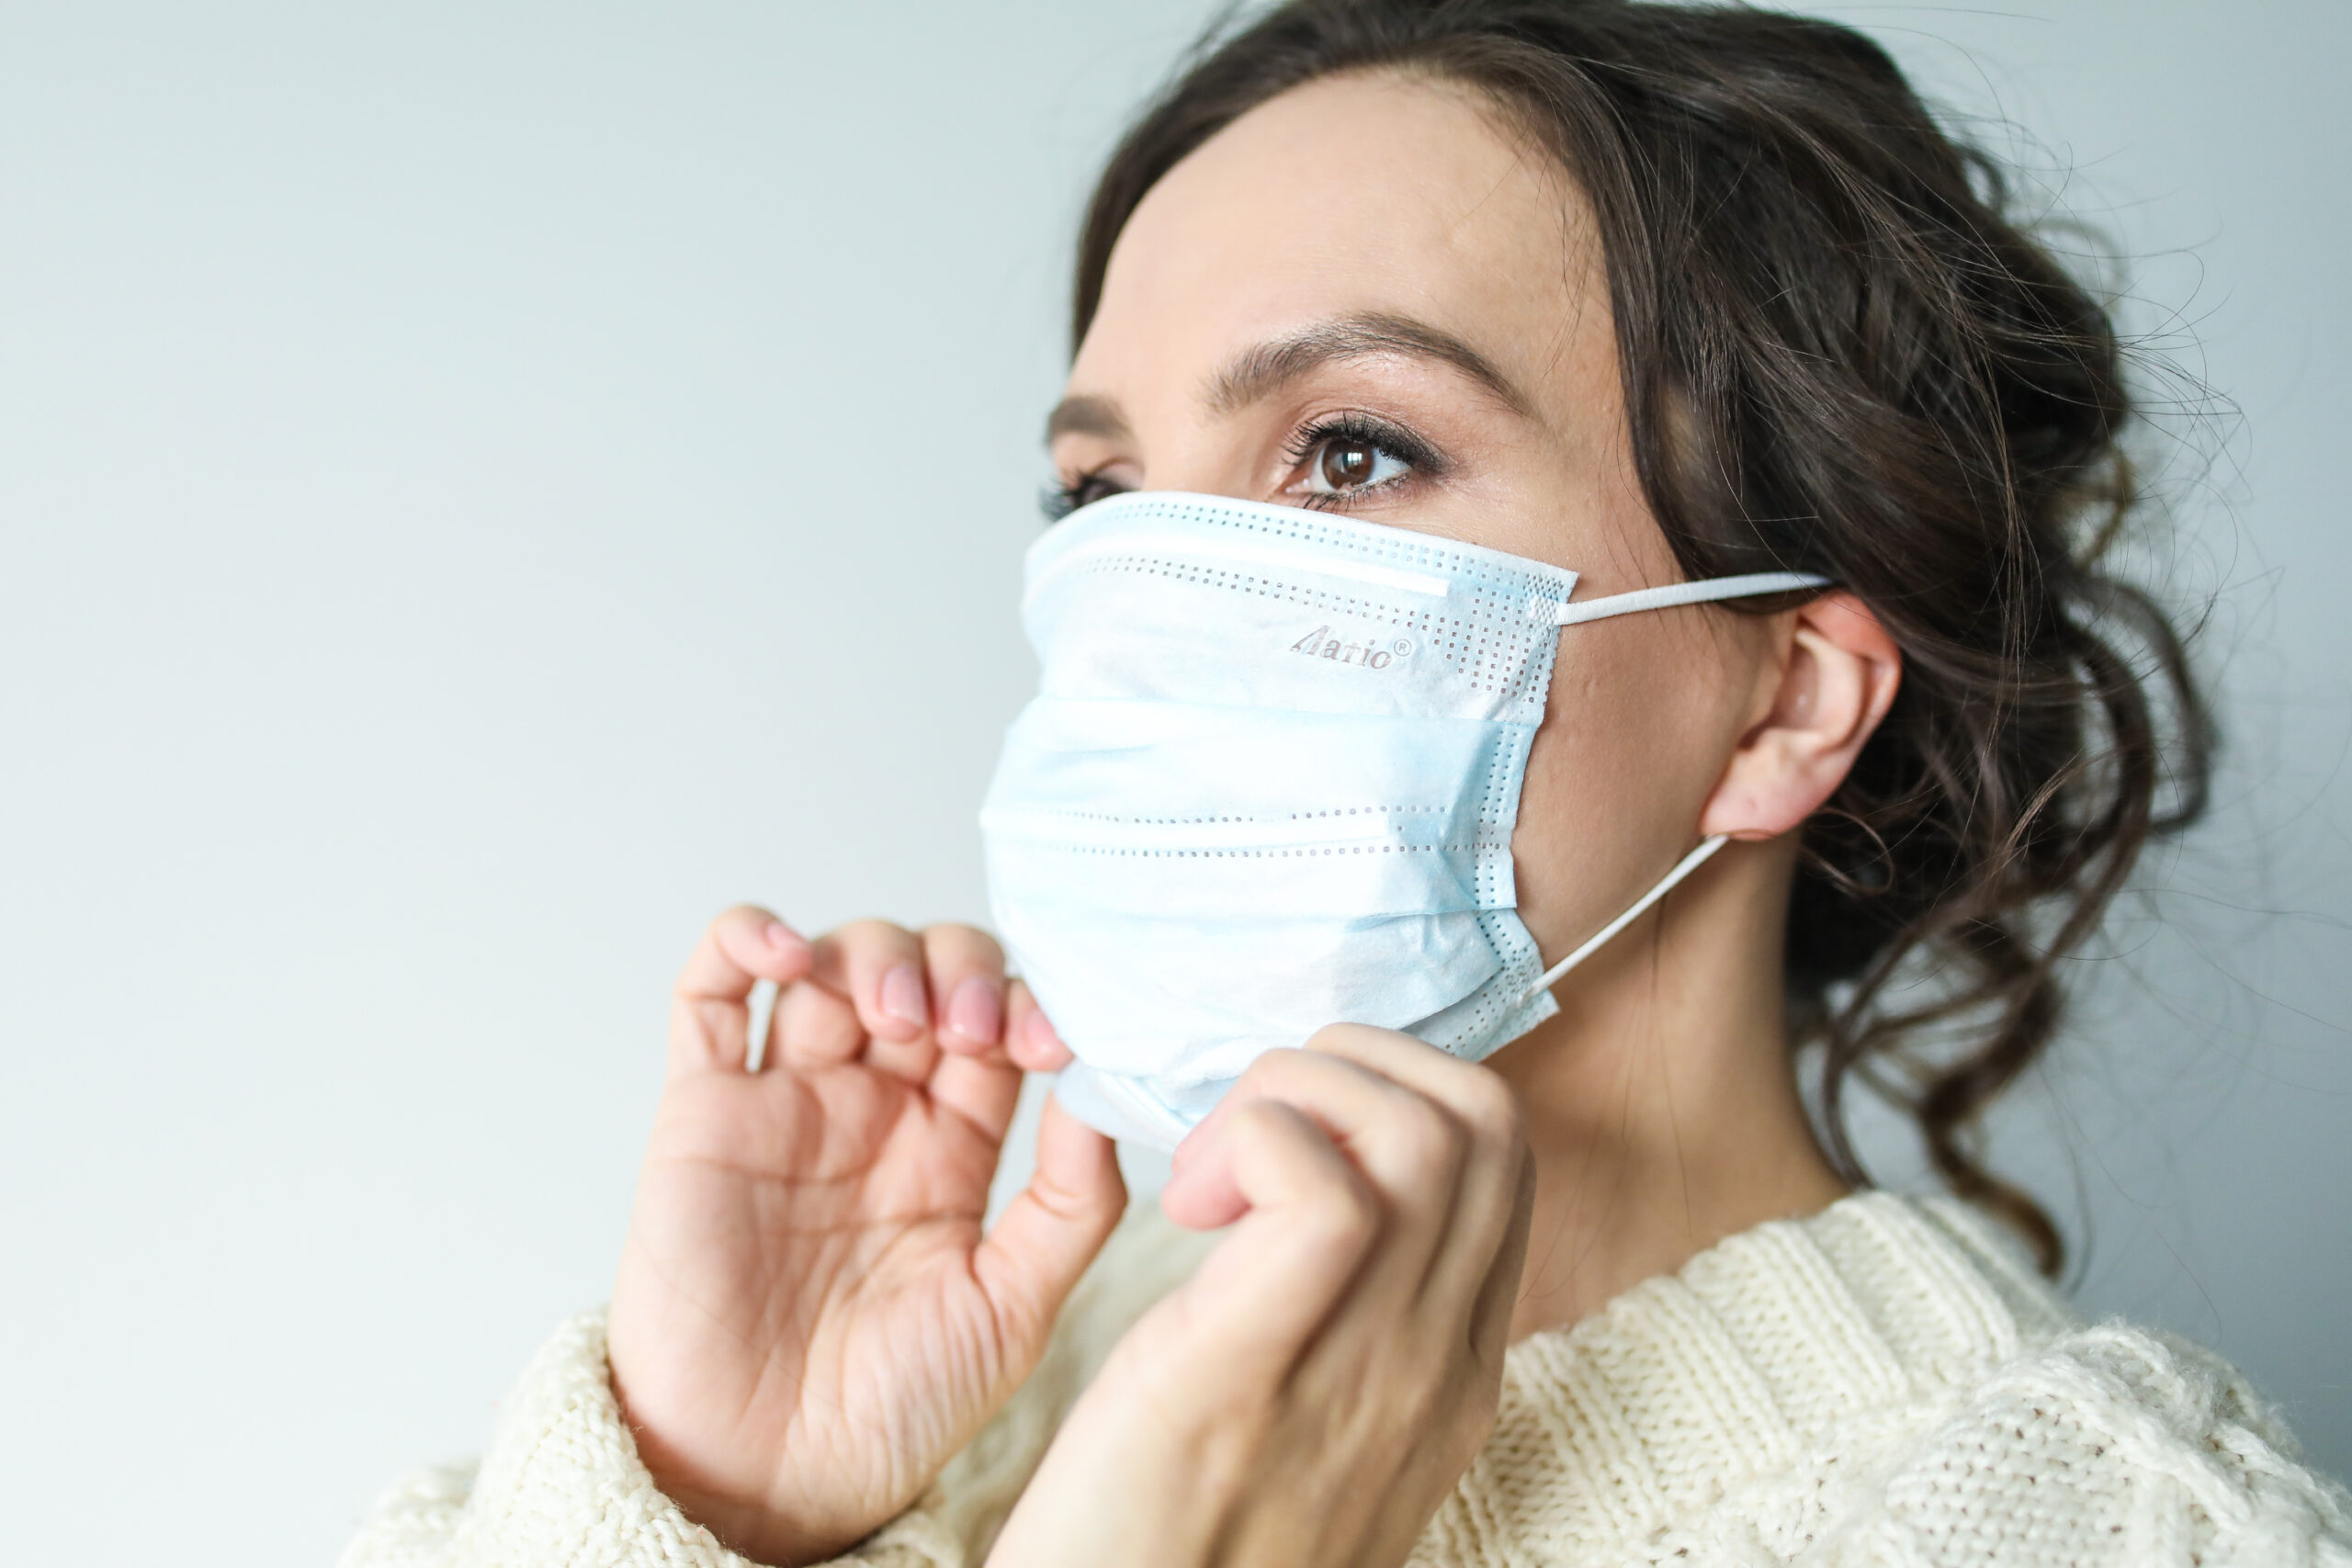 Maskne: 5 ways to avoid breaking out under your face mask